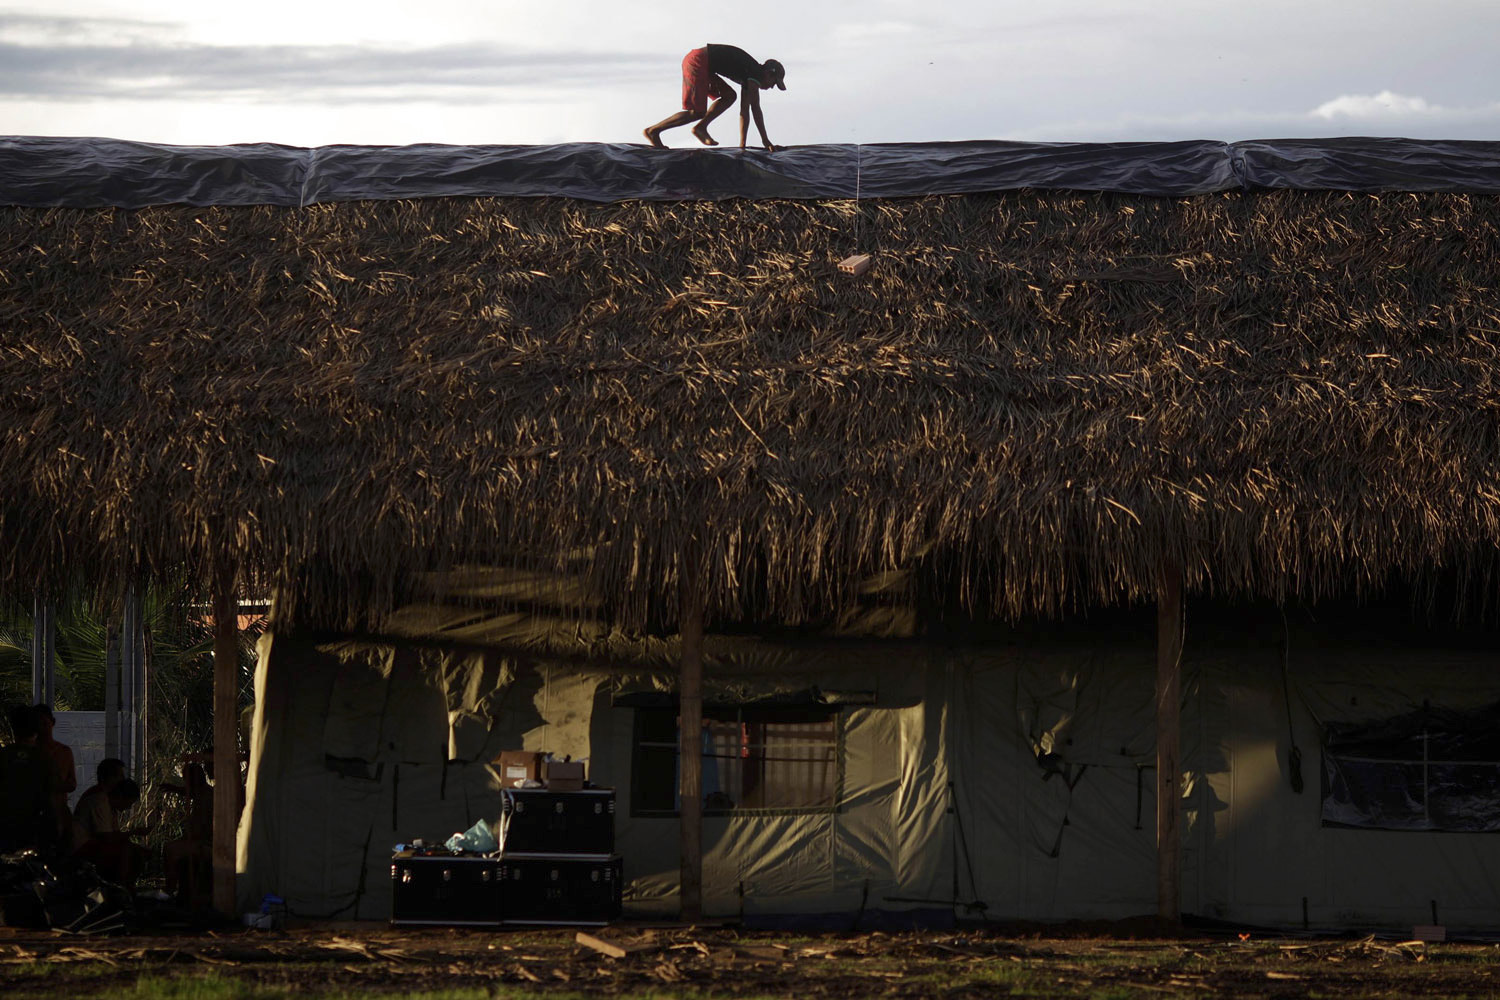 April 21, 2011. A man works on the roof of a campaign hospital built by the  Expedicionarios da Saude  (Brazilian Health Expeditions) on the first day of the medical expedition at the Kayapo tribe in Sao Felix, northern Brazil.